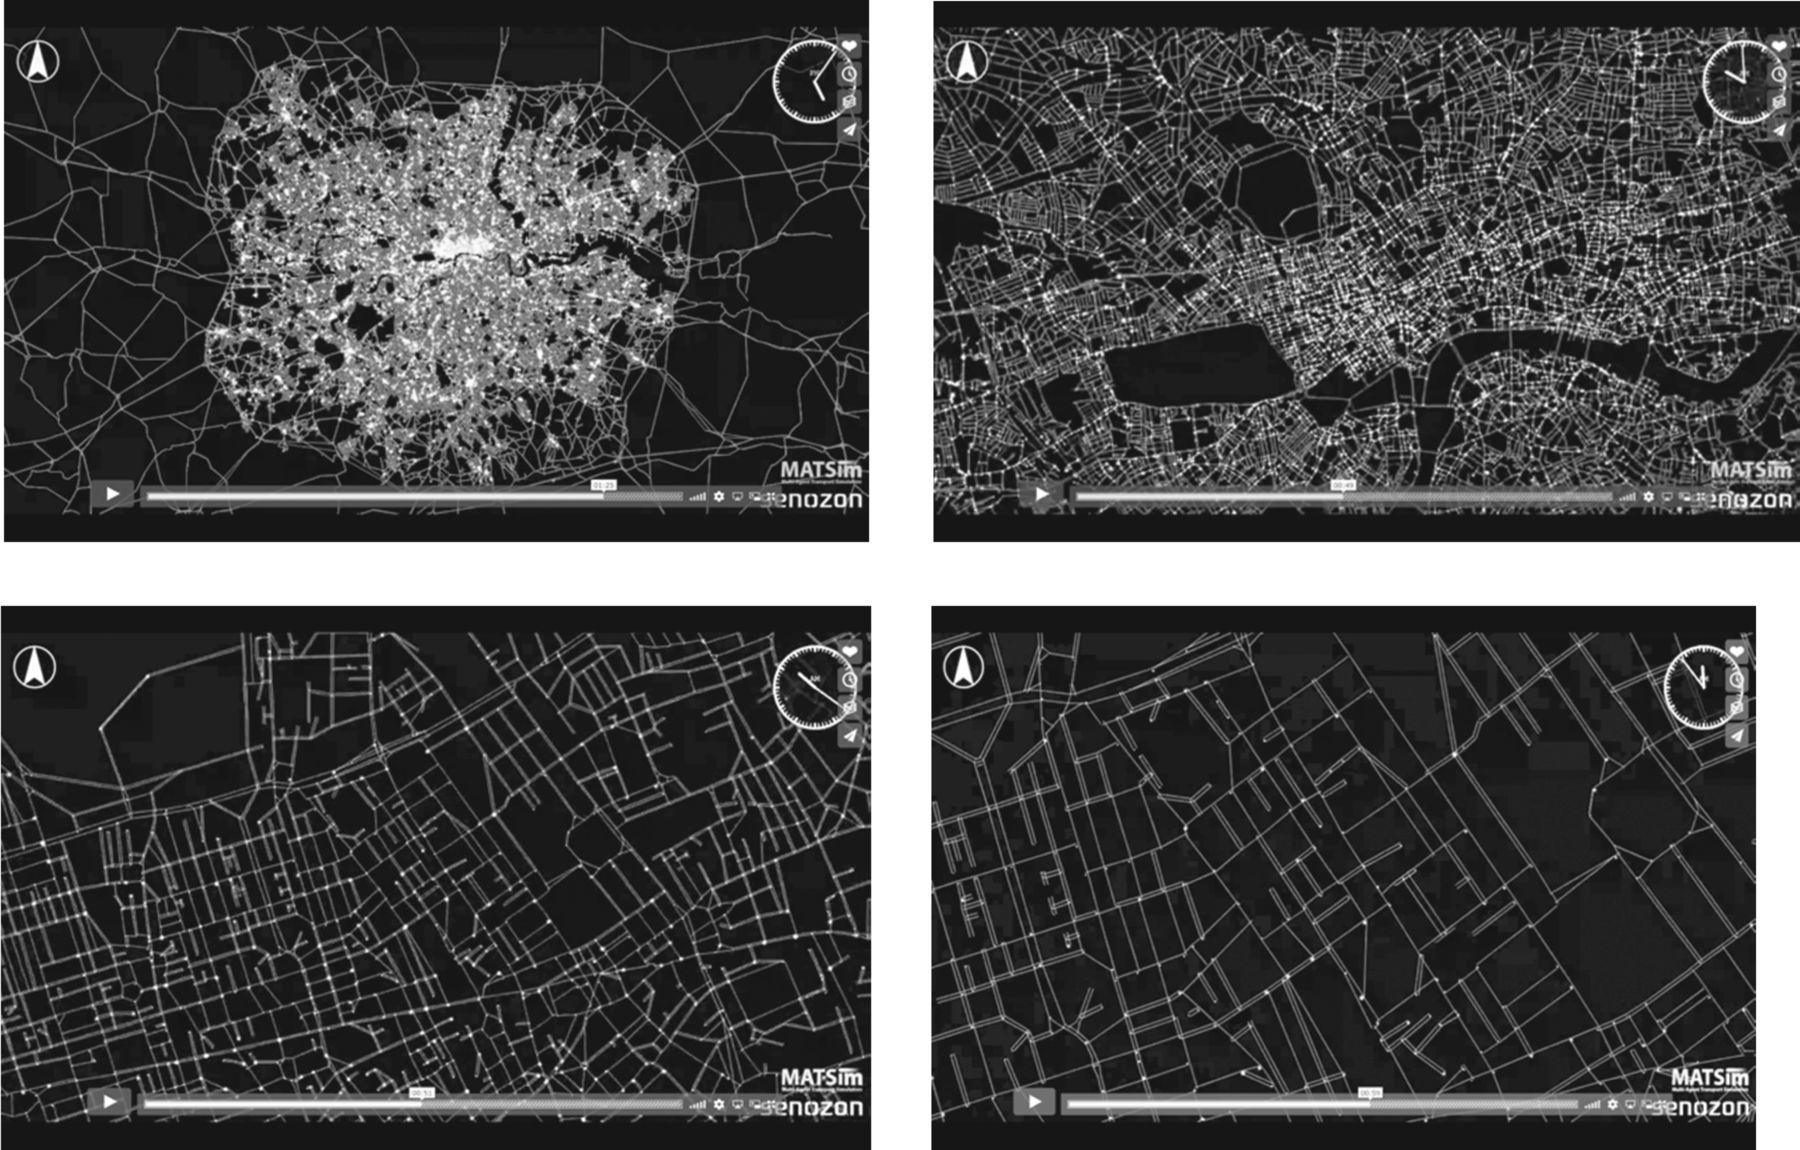 Visualizing aggregate movement in cities | Philosophical